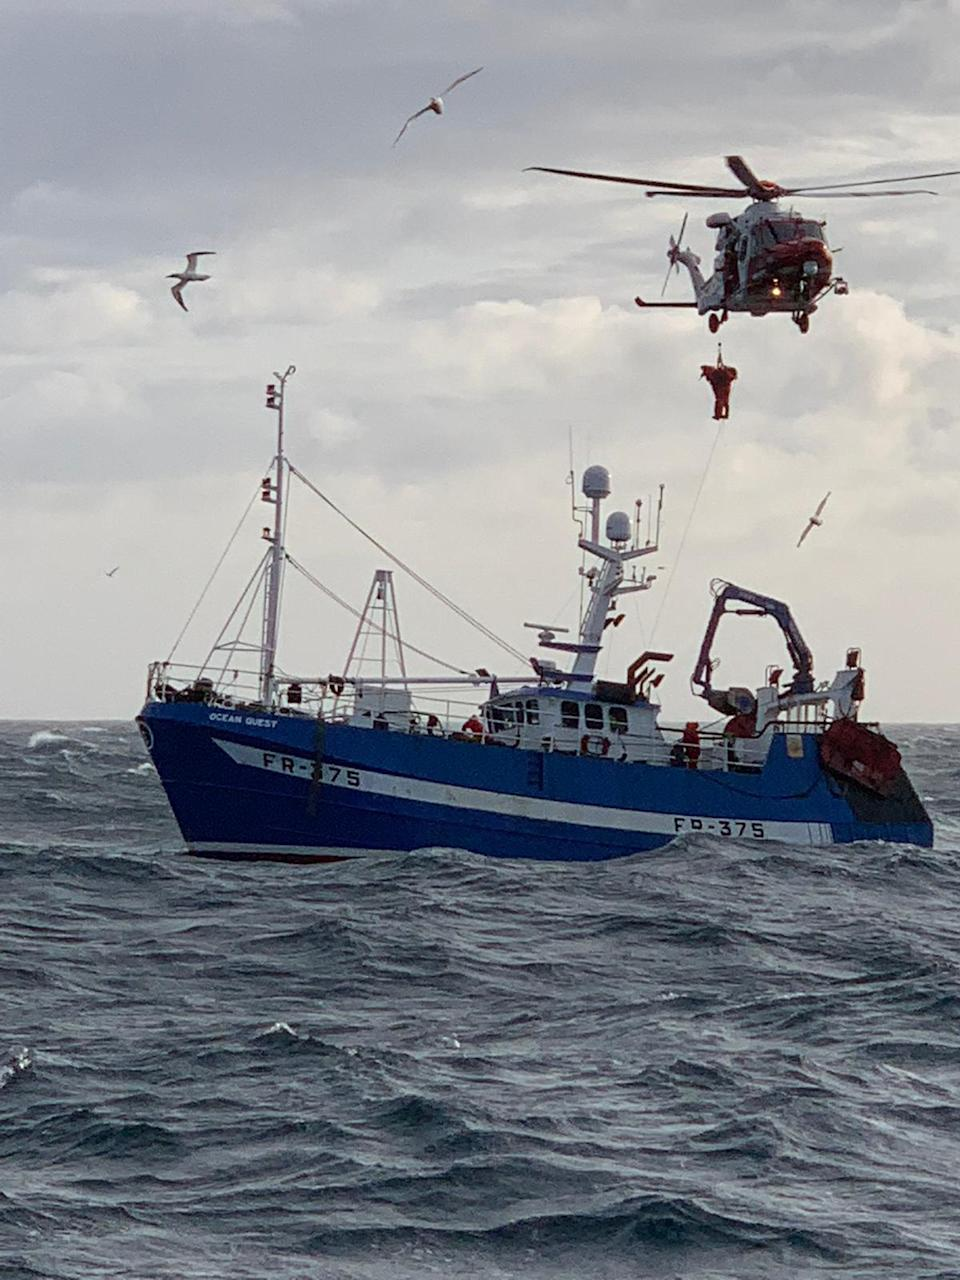 Crew being winched up to the rescue helicopter